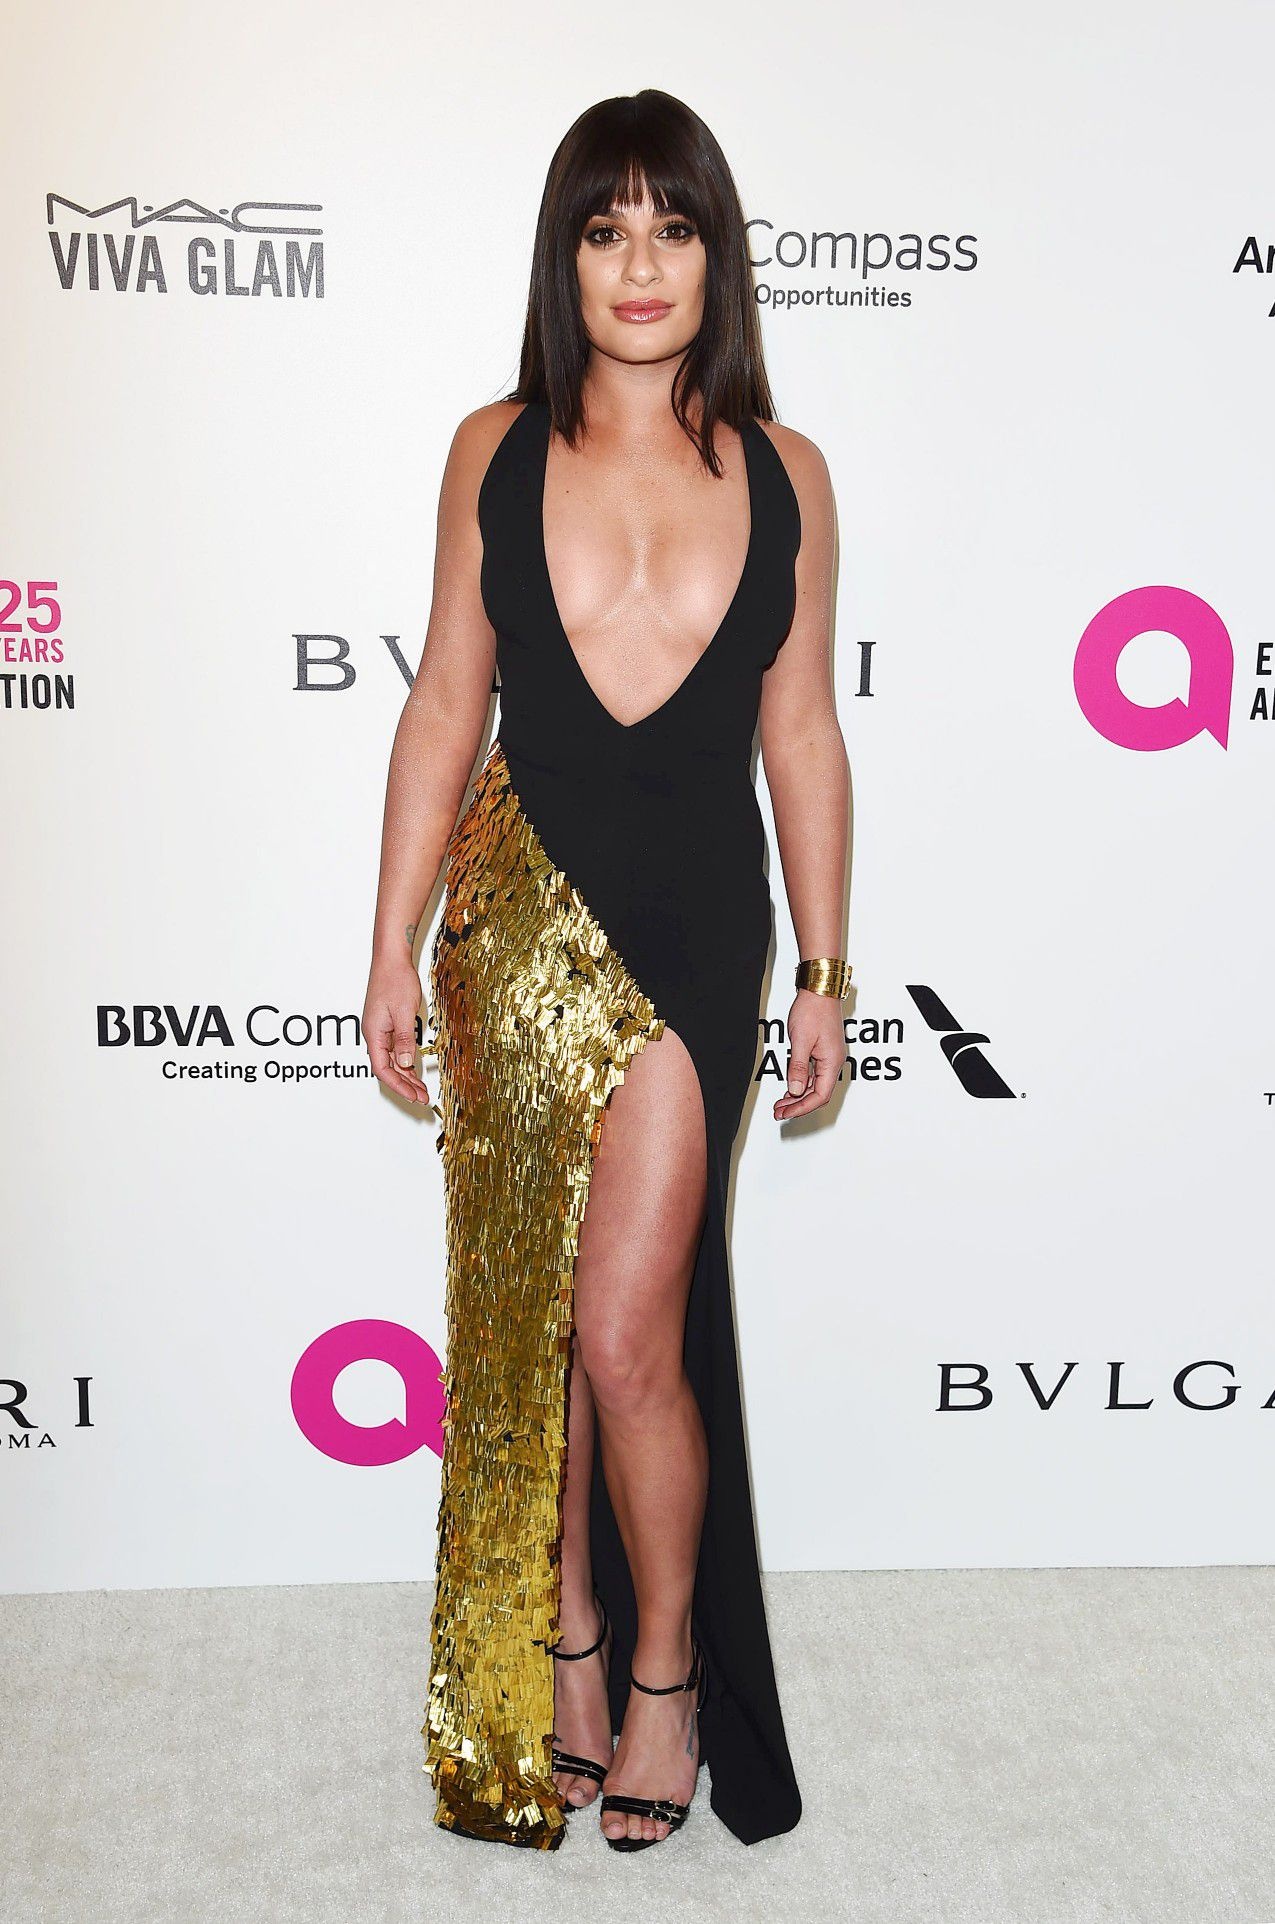 lea-michele-nip-slip-and-cleavage-at-elton-johns-aids-foundation-oscars-viewing-party-5882